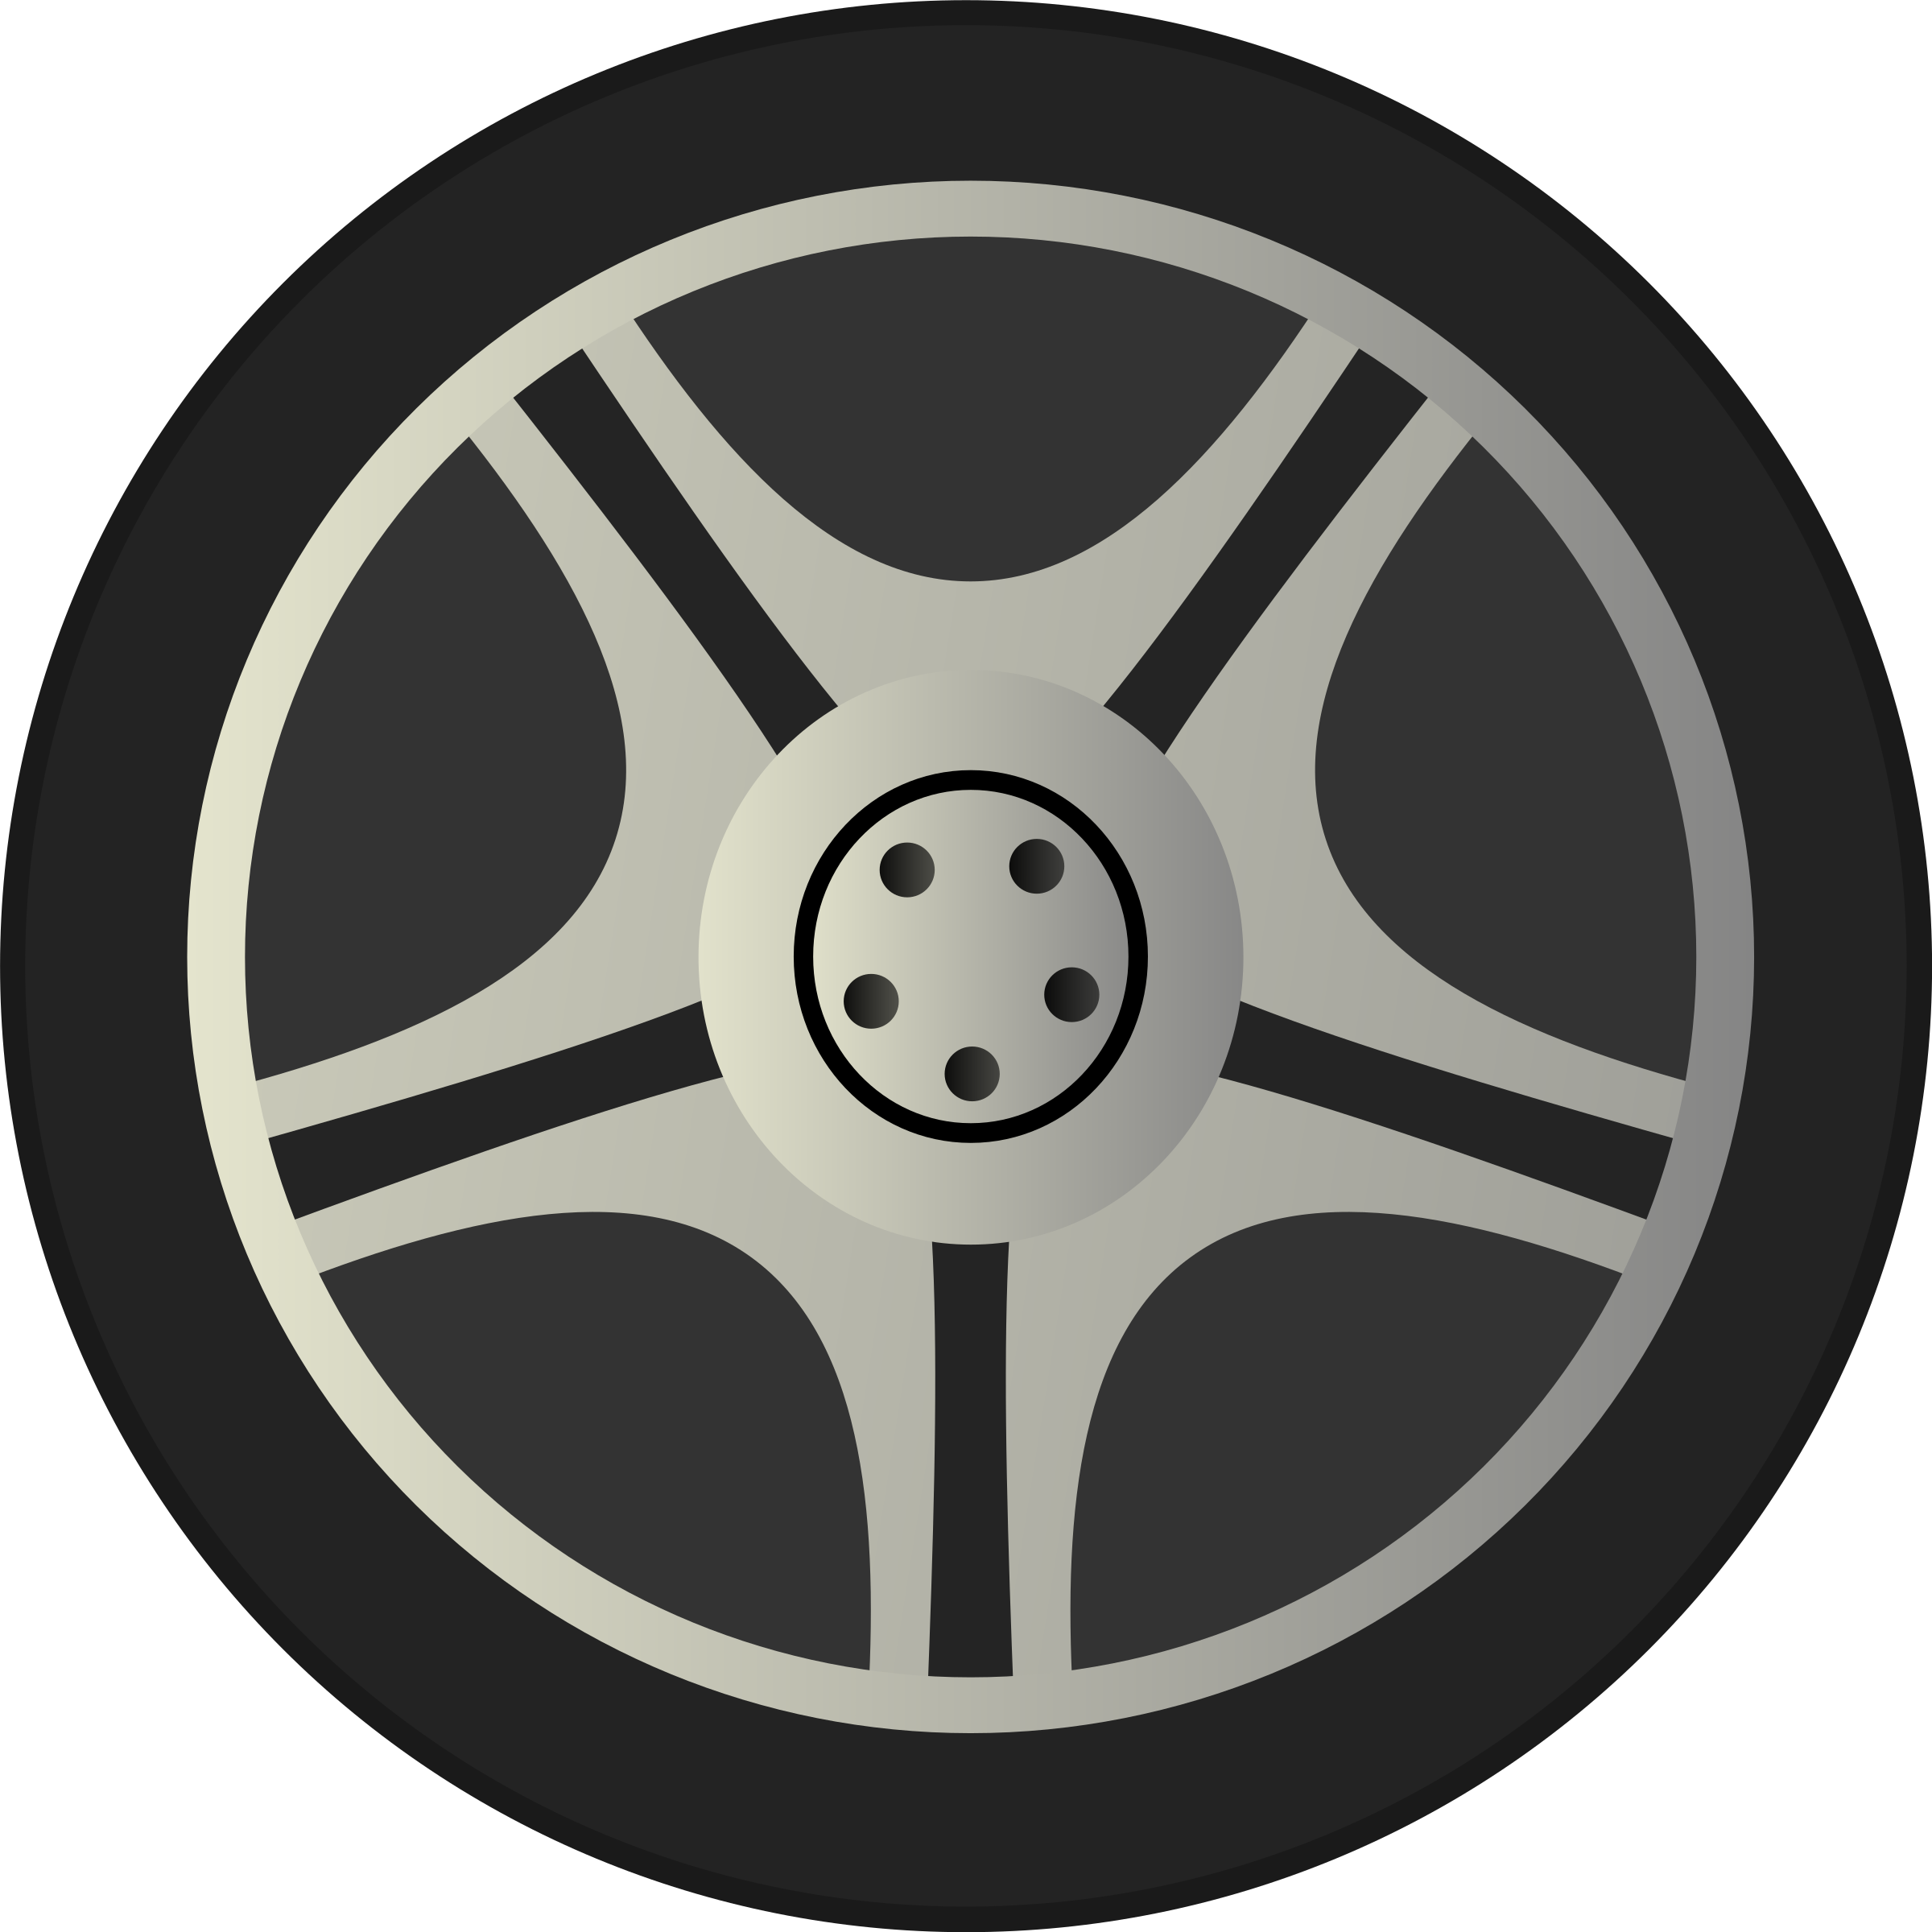 Simple Car Wheel Tire Rims Side View by qubodup